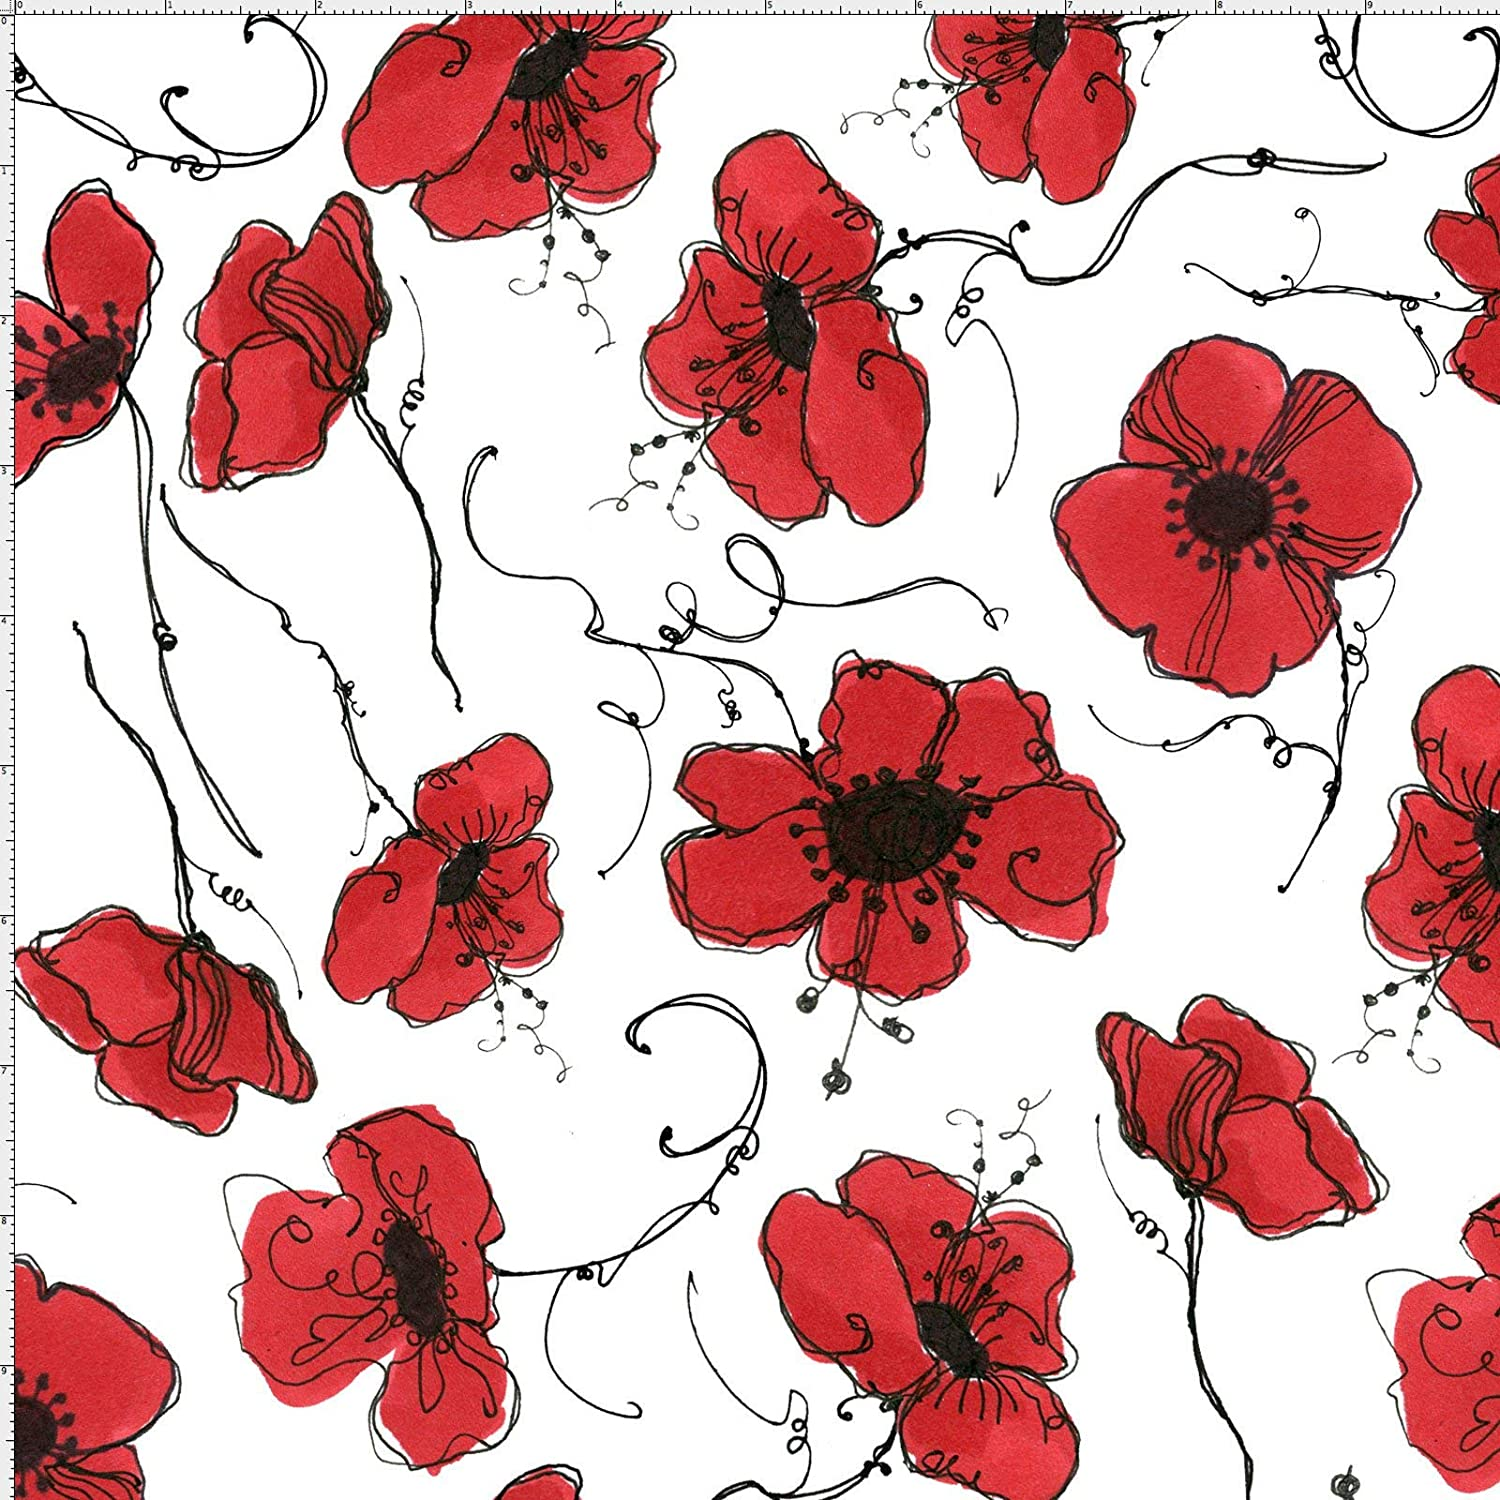 Loralie Designs - Poppies White Fabric by The Yard for Sewing - Loralie's Flower Fabric Collection - red and White Flower Fabric - 100% Cotton/Washable